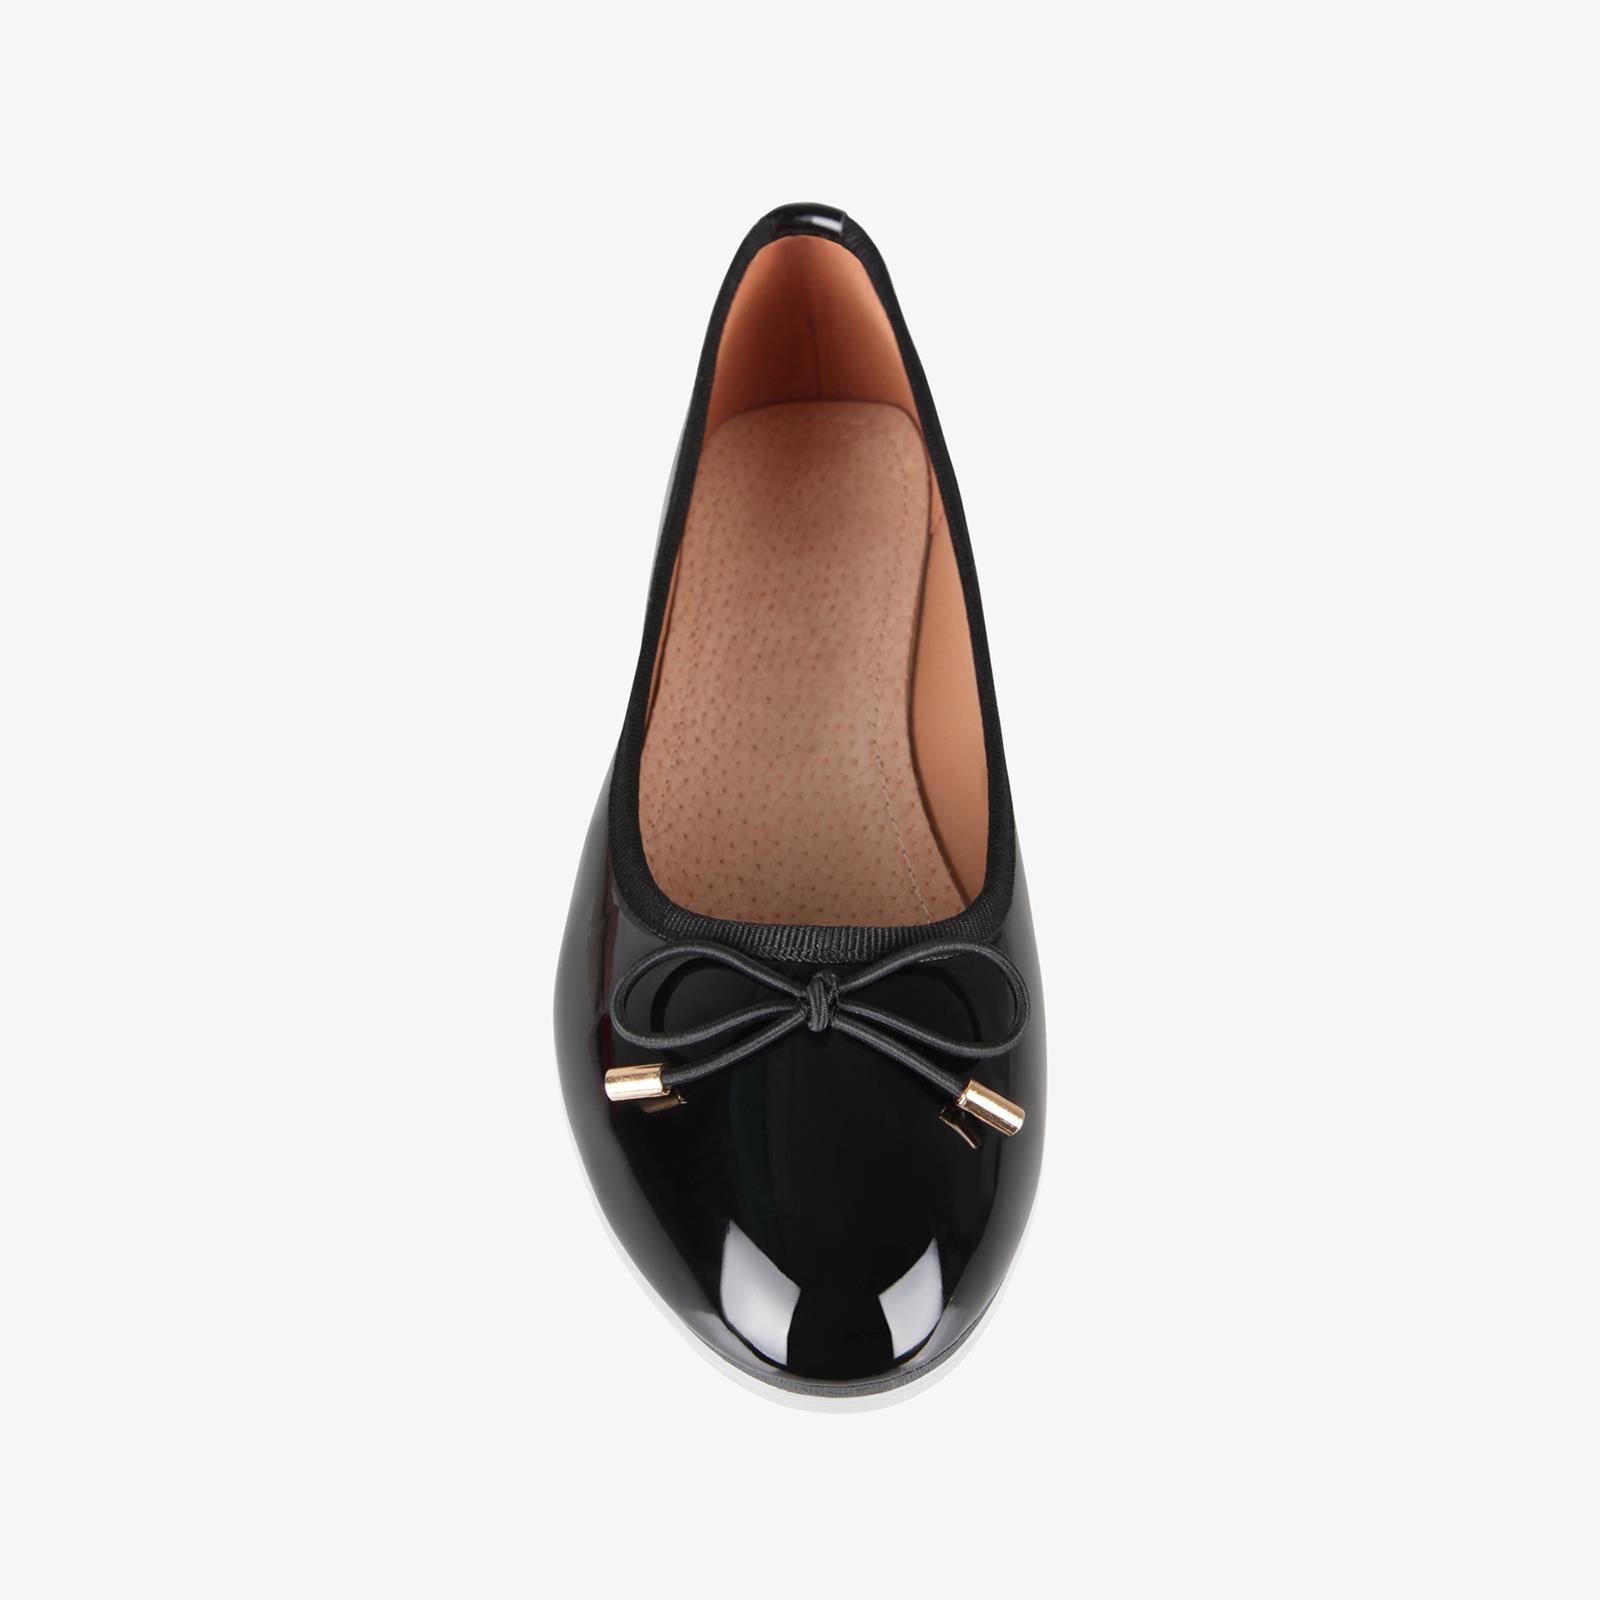 Womens-Ladies-Patent-Flat-Shoes-Ballerina-Ballet-Dolly-Court-Pumps-Slip-On-Bow thumbnail 3